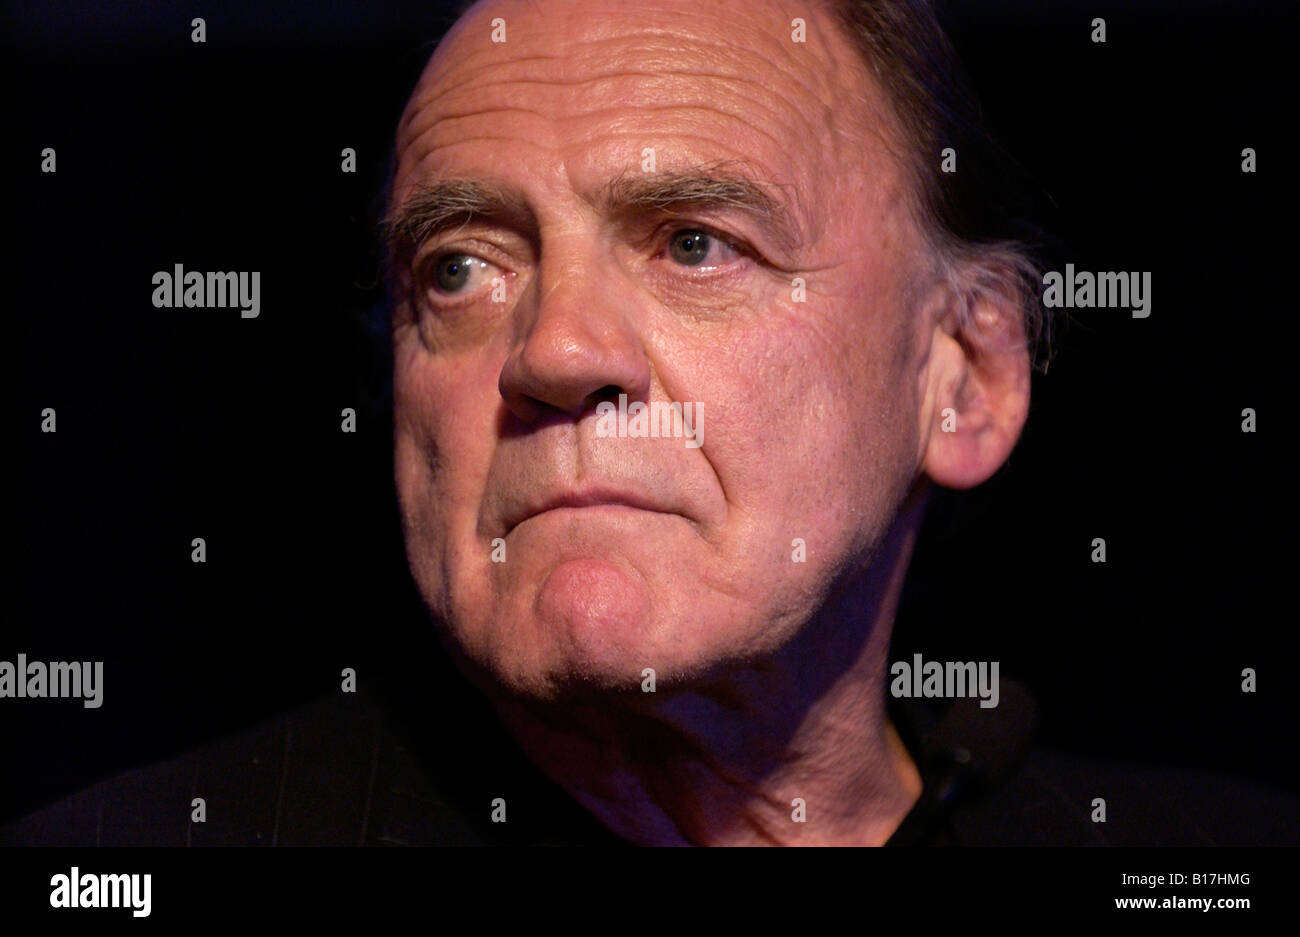 Bruno Ganz - the lord of the ring best actor in Germany 57